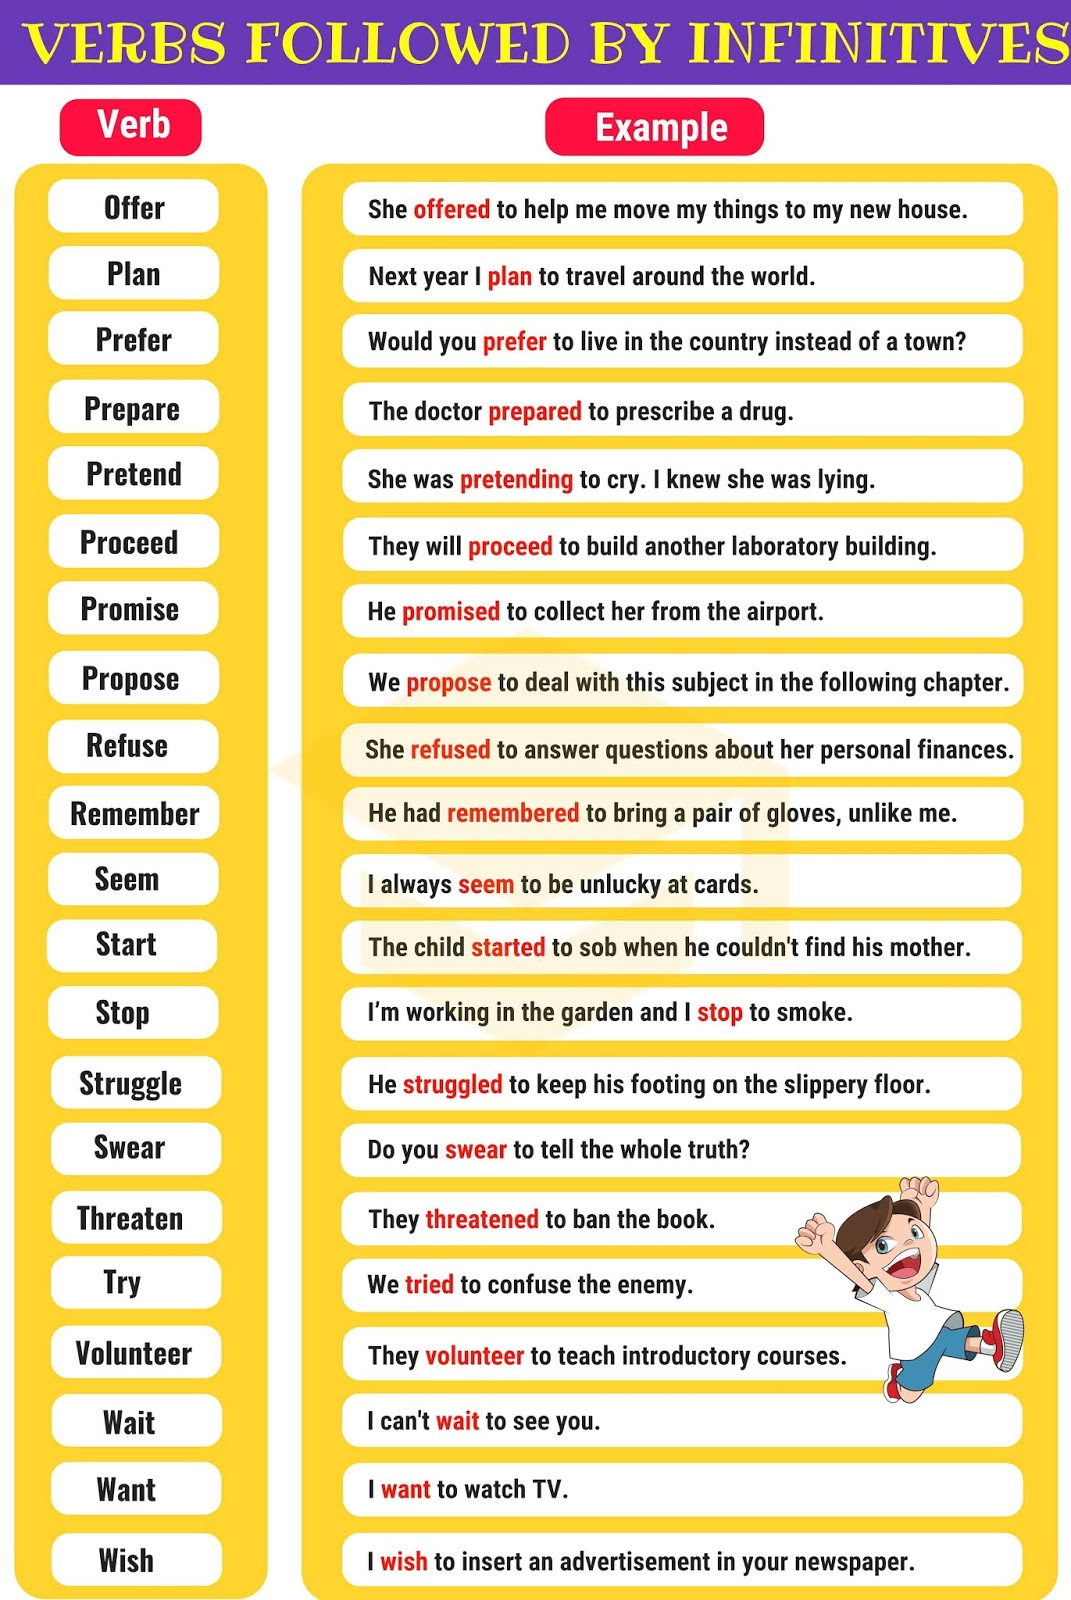 Gerunds Infinitives Adverbs Of Frequency